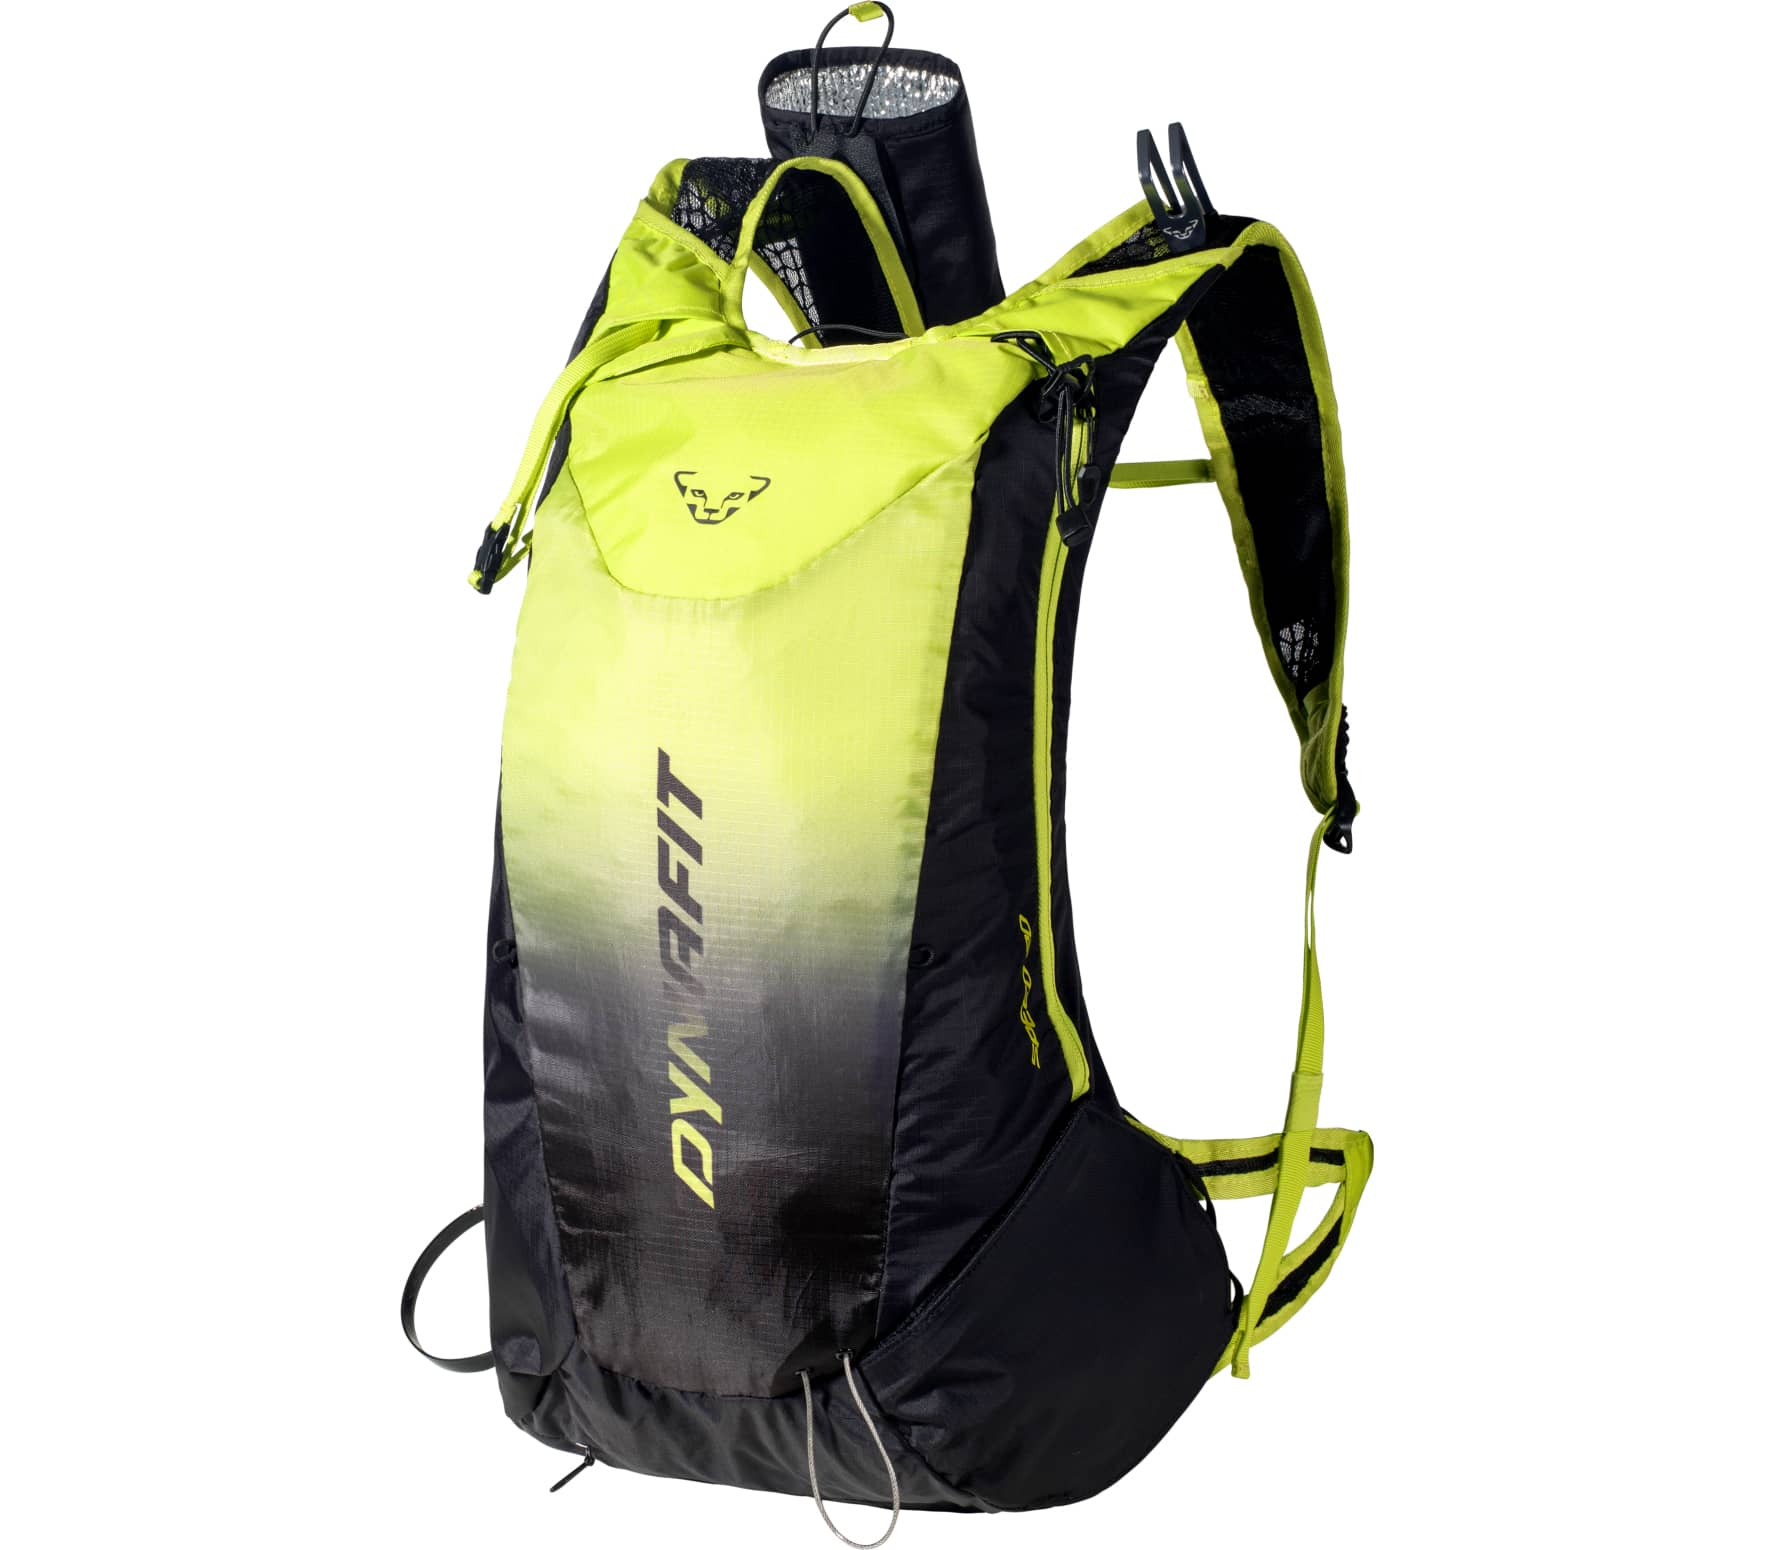 Dynafit - Speed 20 skis touring backpack (black/green)